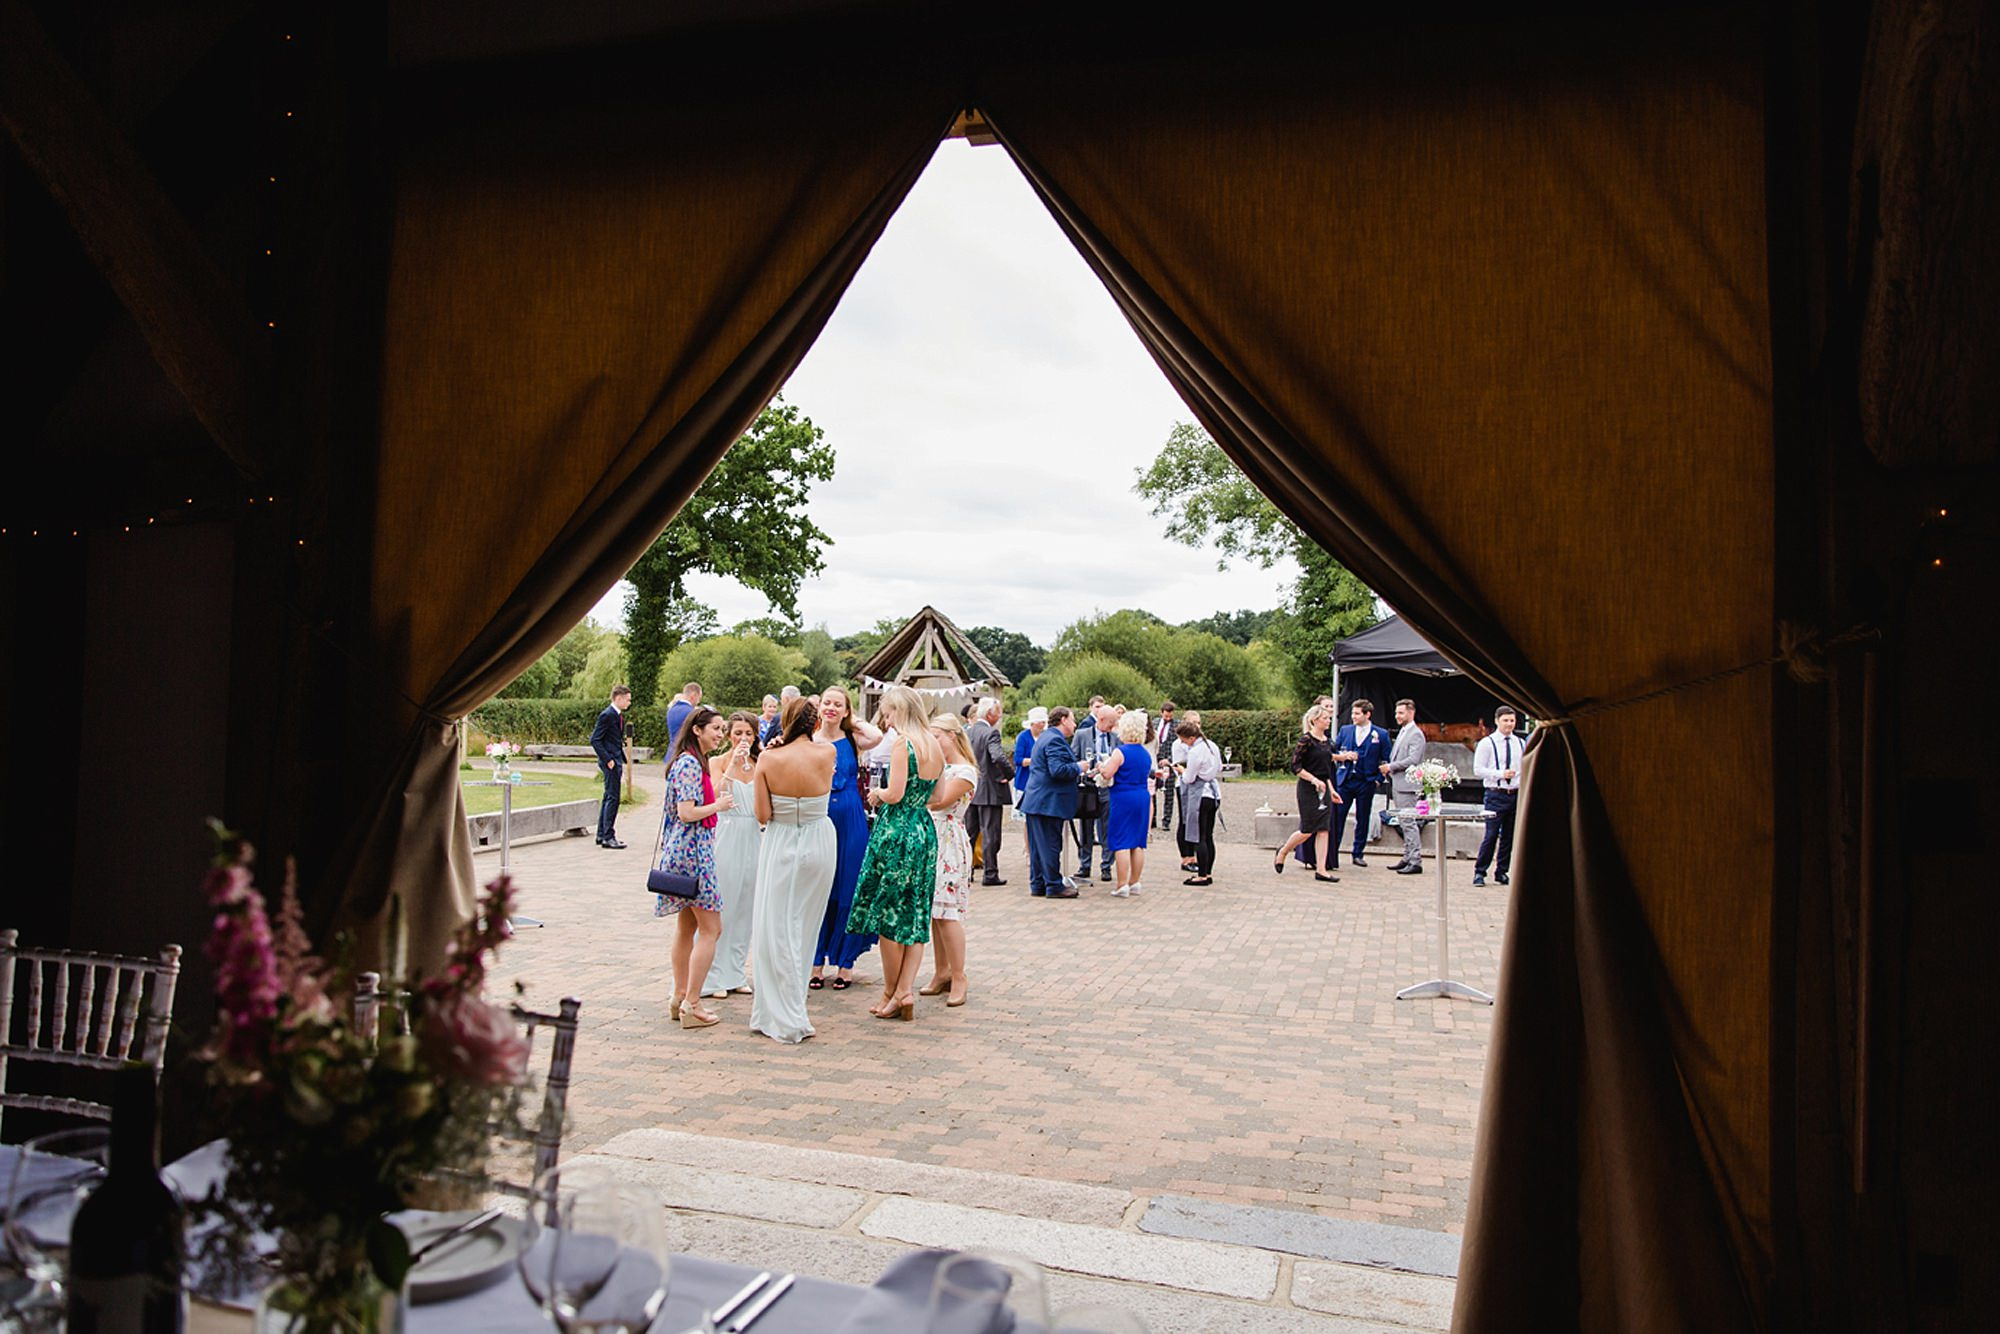 Old Greens Barn Newdigate wedding photography wedding guests together